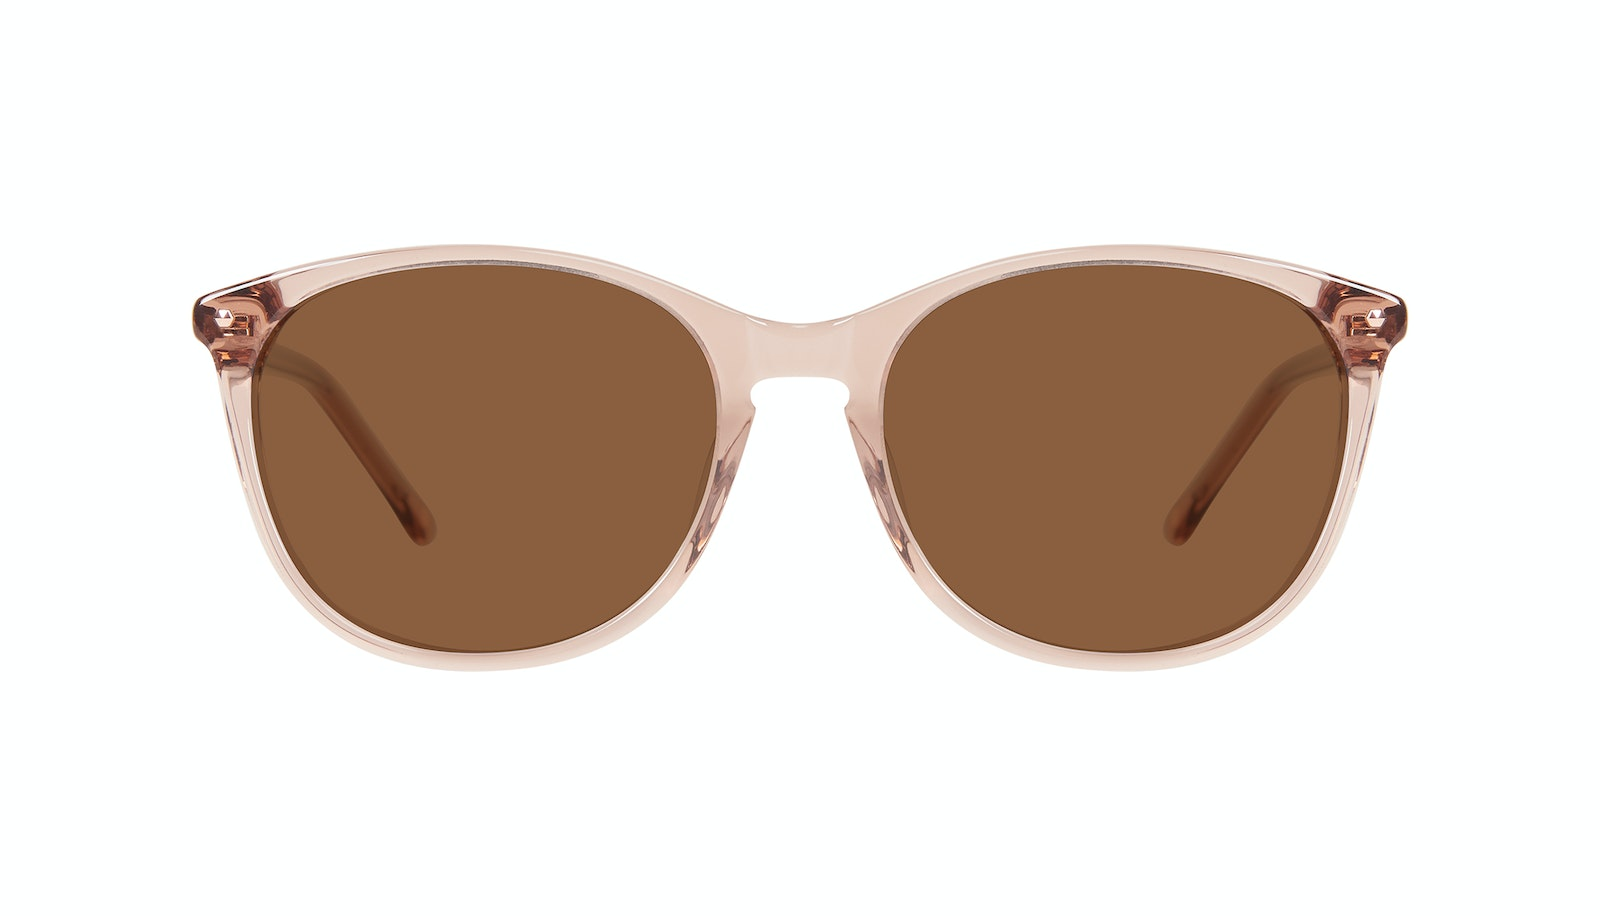 Affordable Fashion Glasses Rectangle Square Round Sunglasses Women Nadine Rose